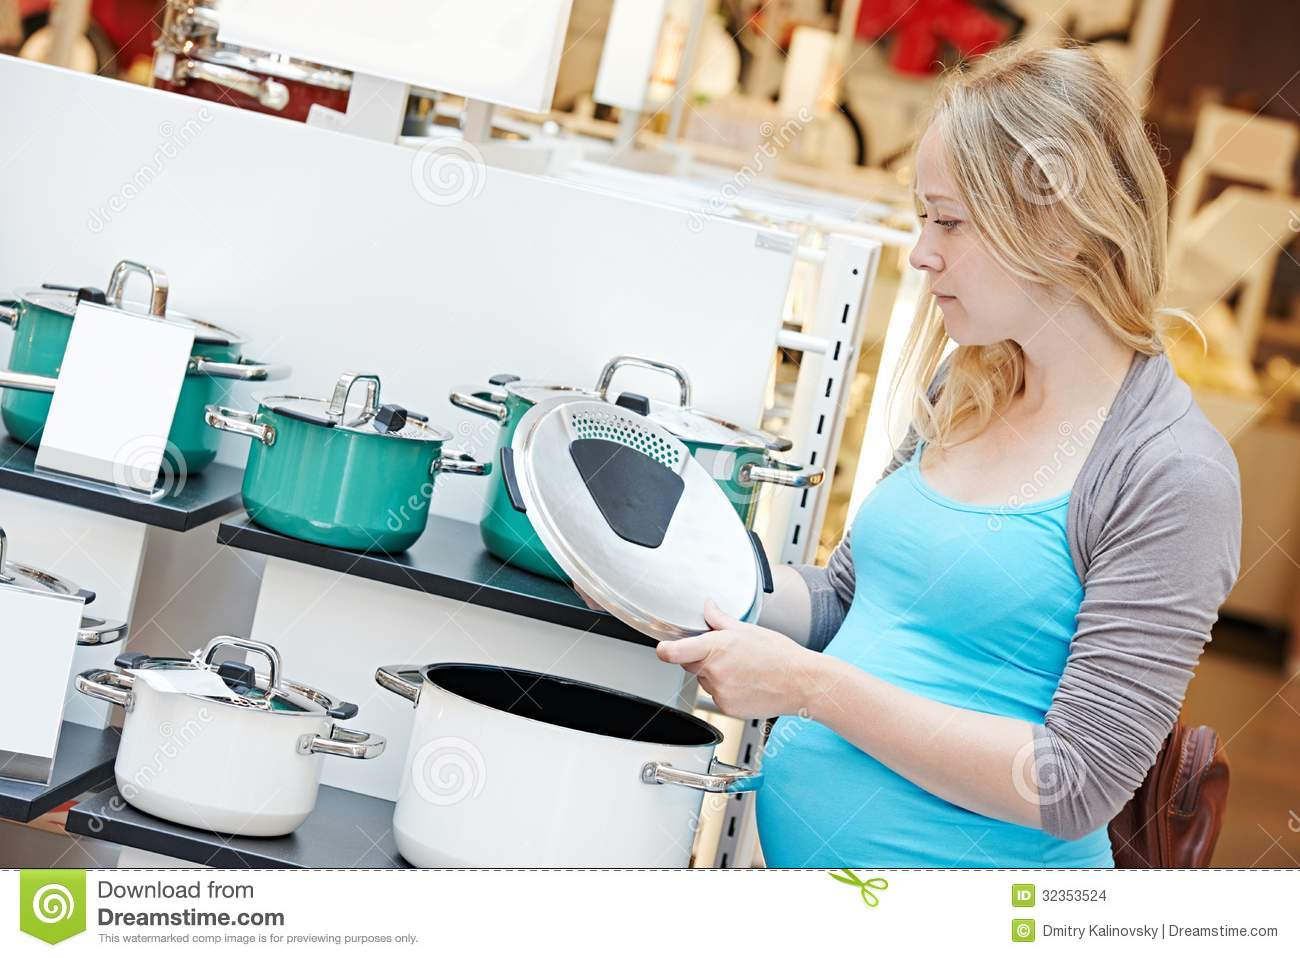 Appliance Choosing Home Kitchen Mall Pot Pregnant Shopping